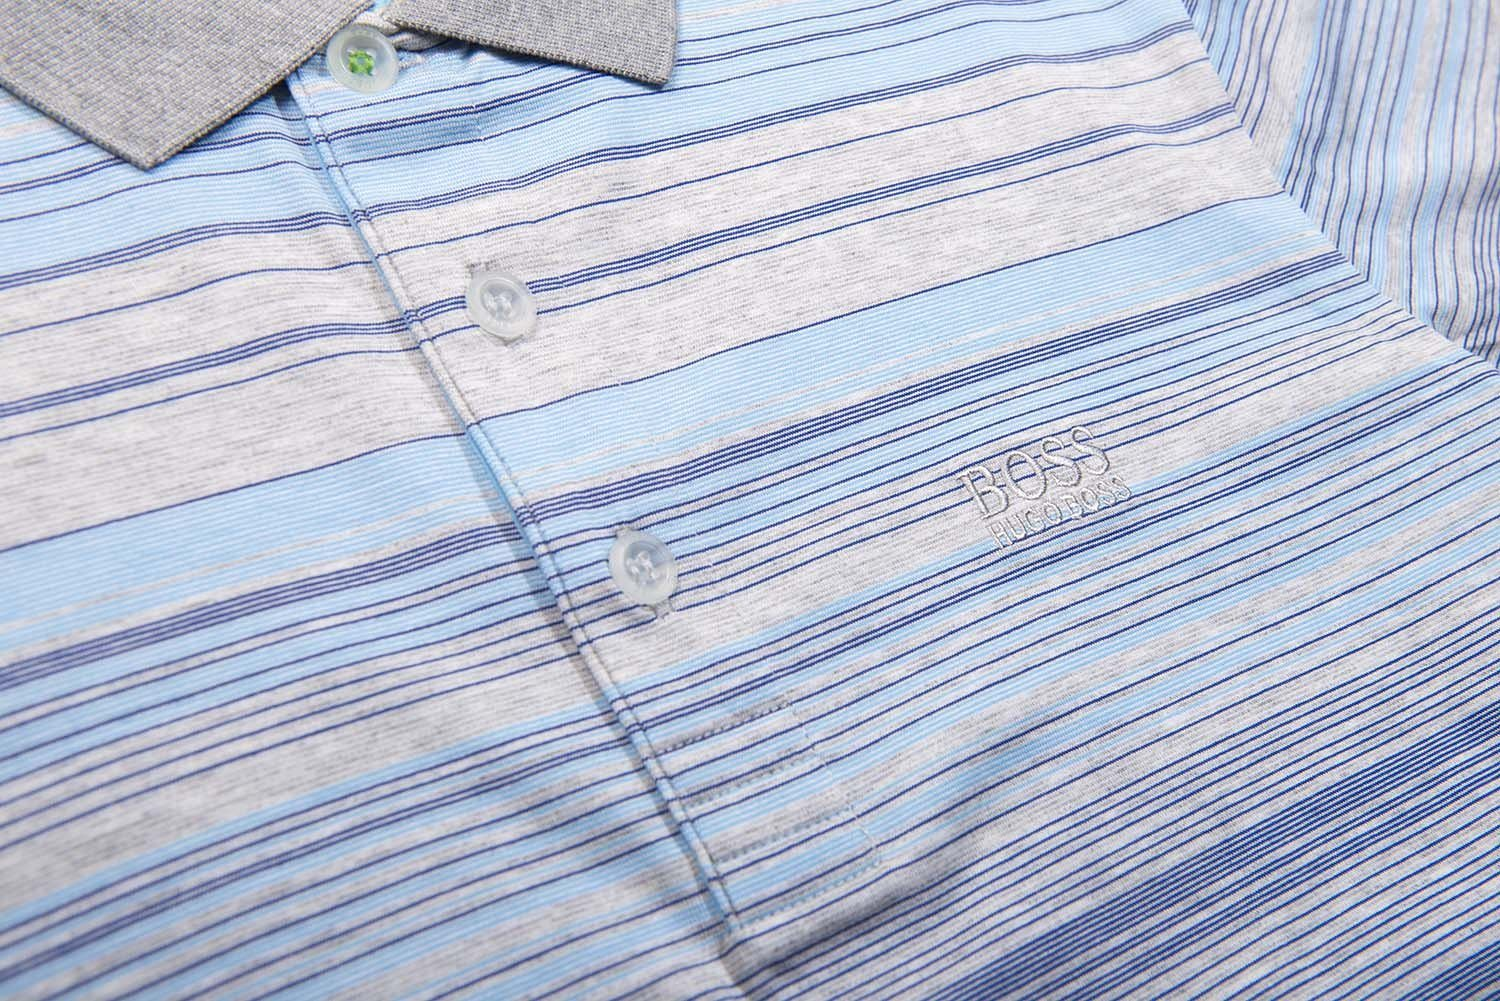 BOSS Athleisure Paddy 3 Striped Polo Shirt in Grey / Blue